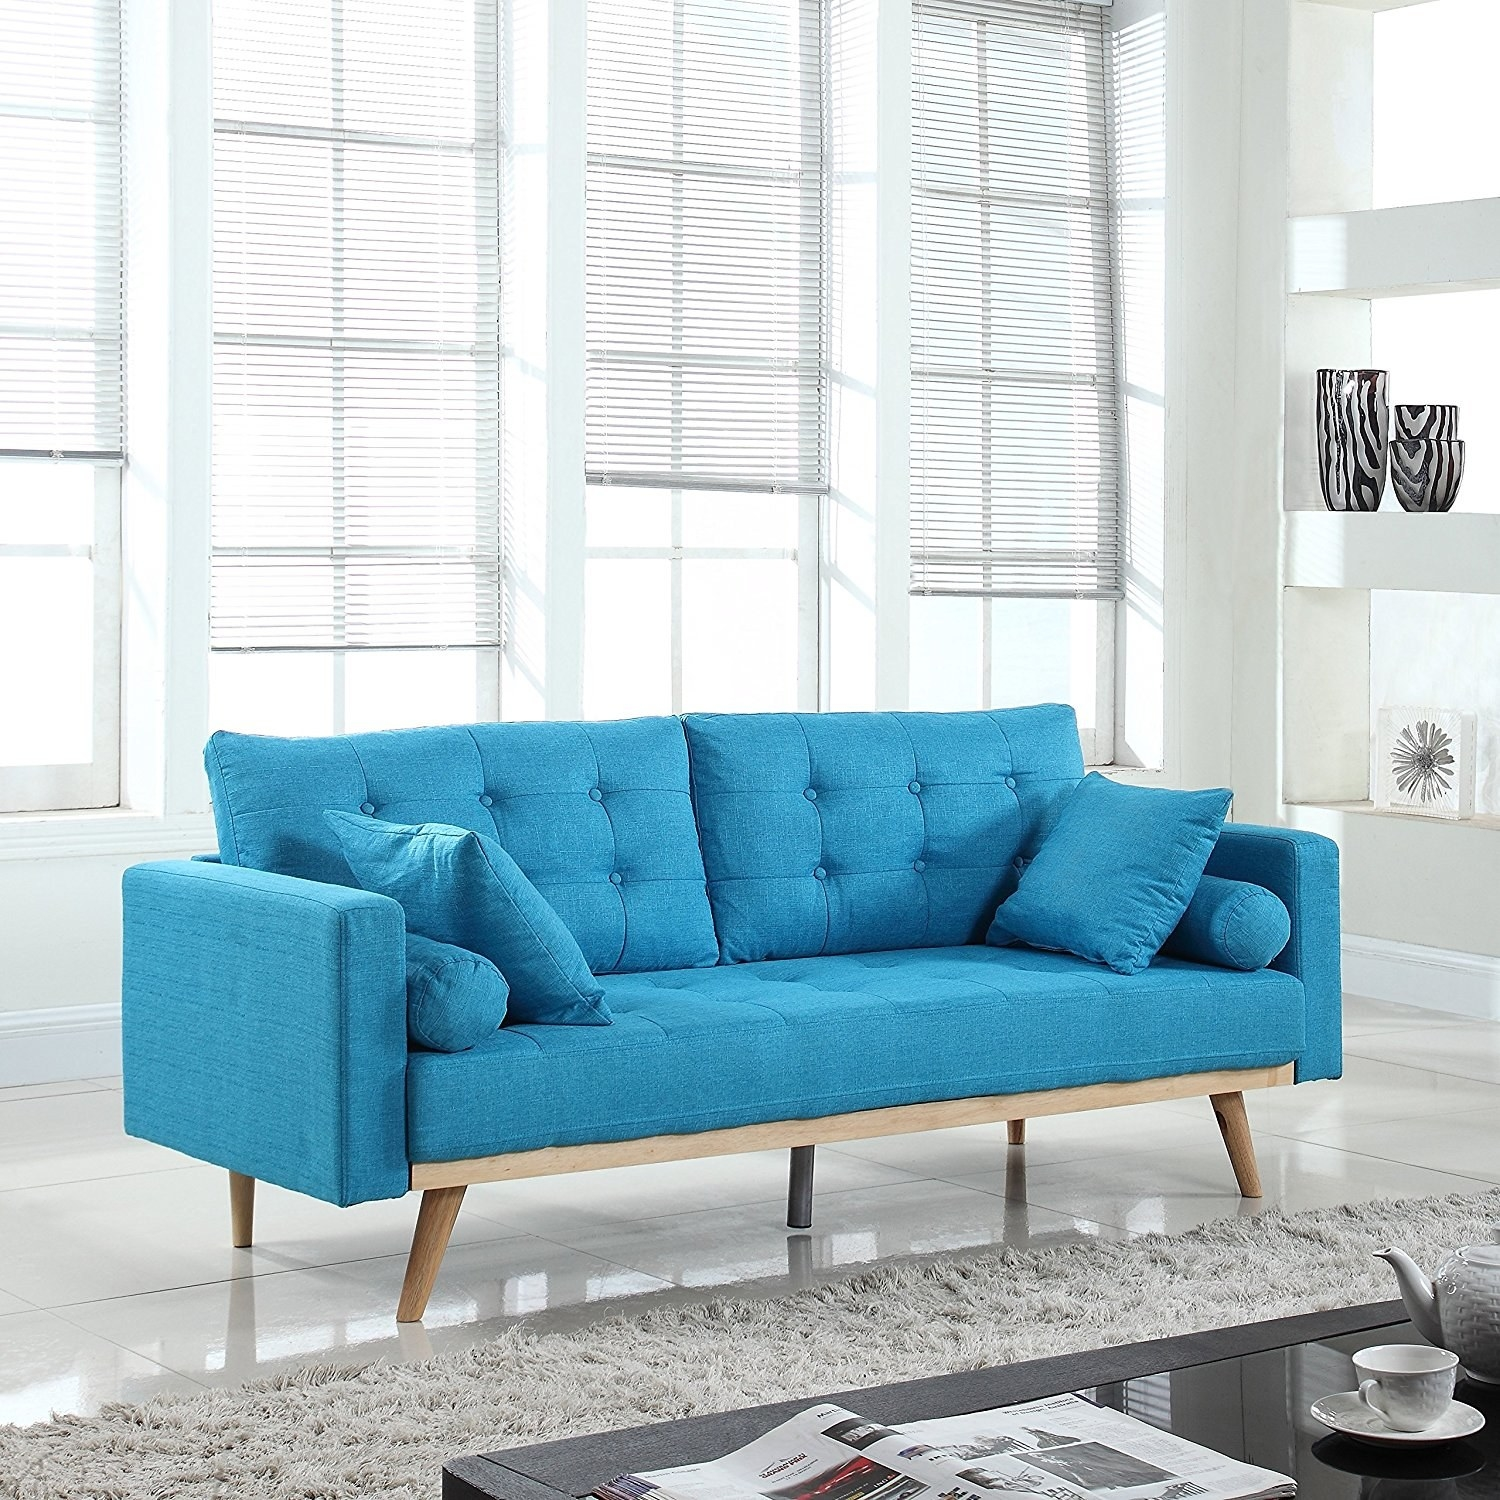 21 Sofas For Anyone Who Doesnt Have A Lot Of Space